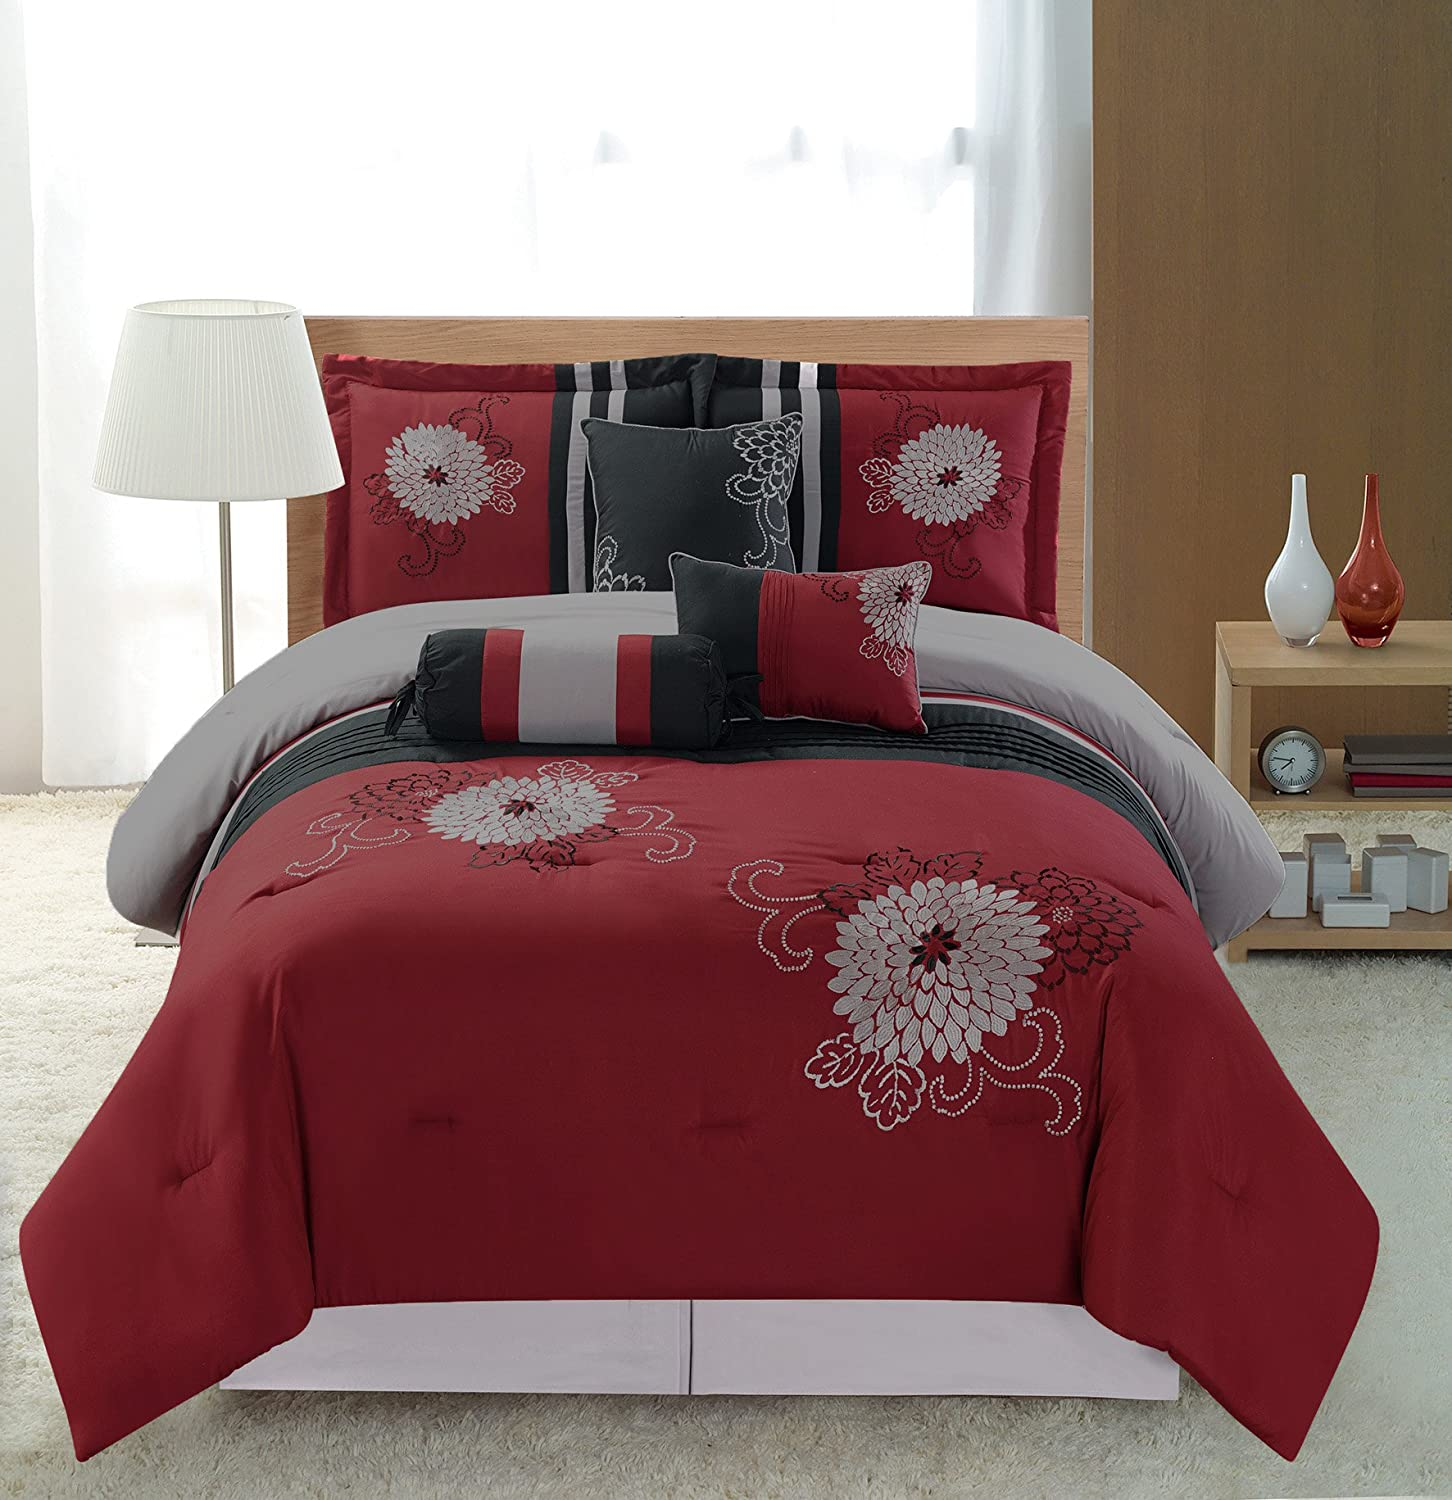 Black and red bed sets - 7 Pc Embroidery Bedding Red Black Grey Comforter Set Shamz Red Queen